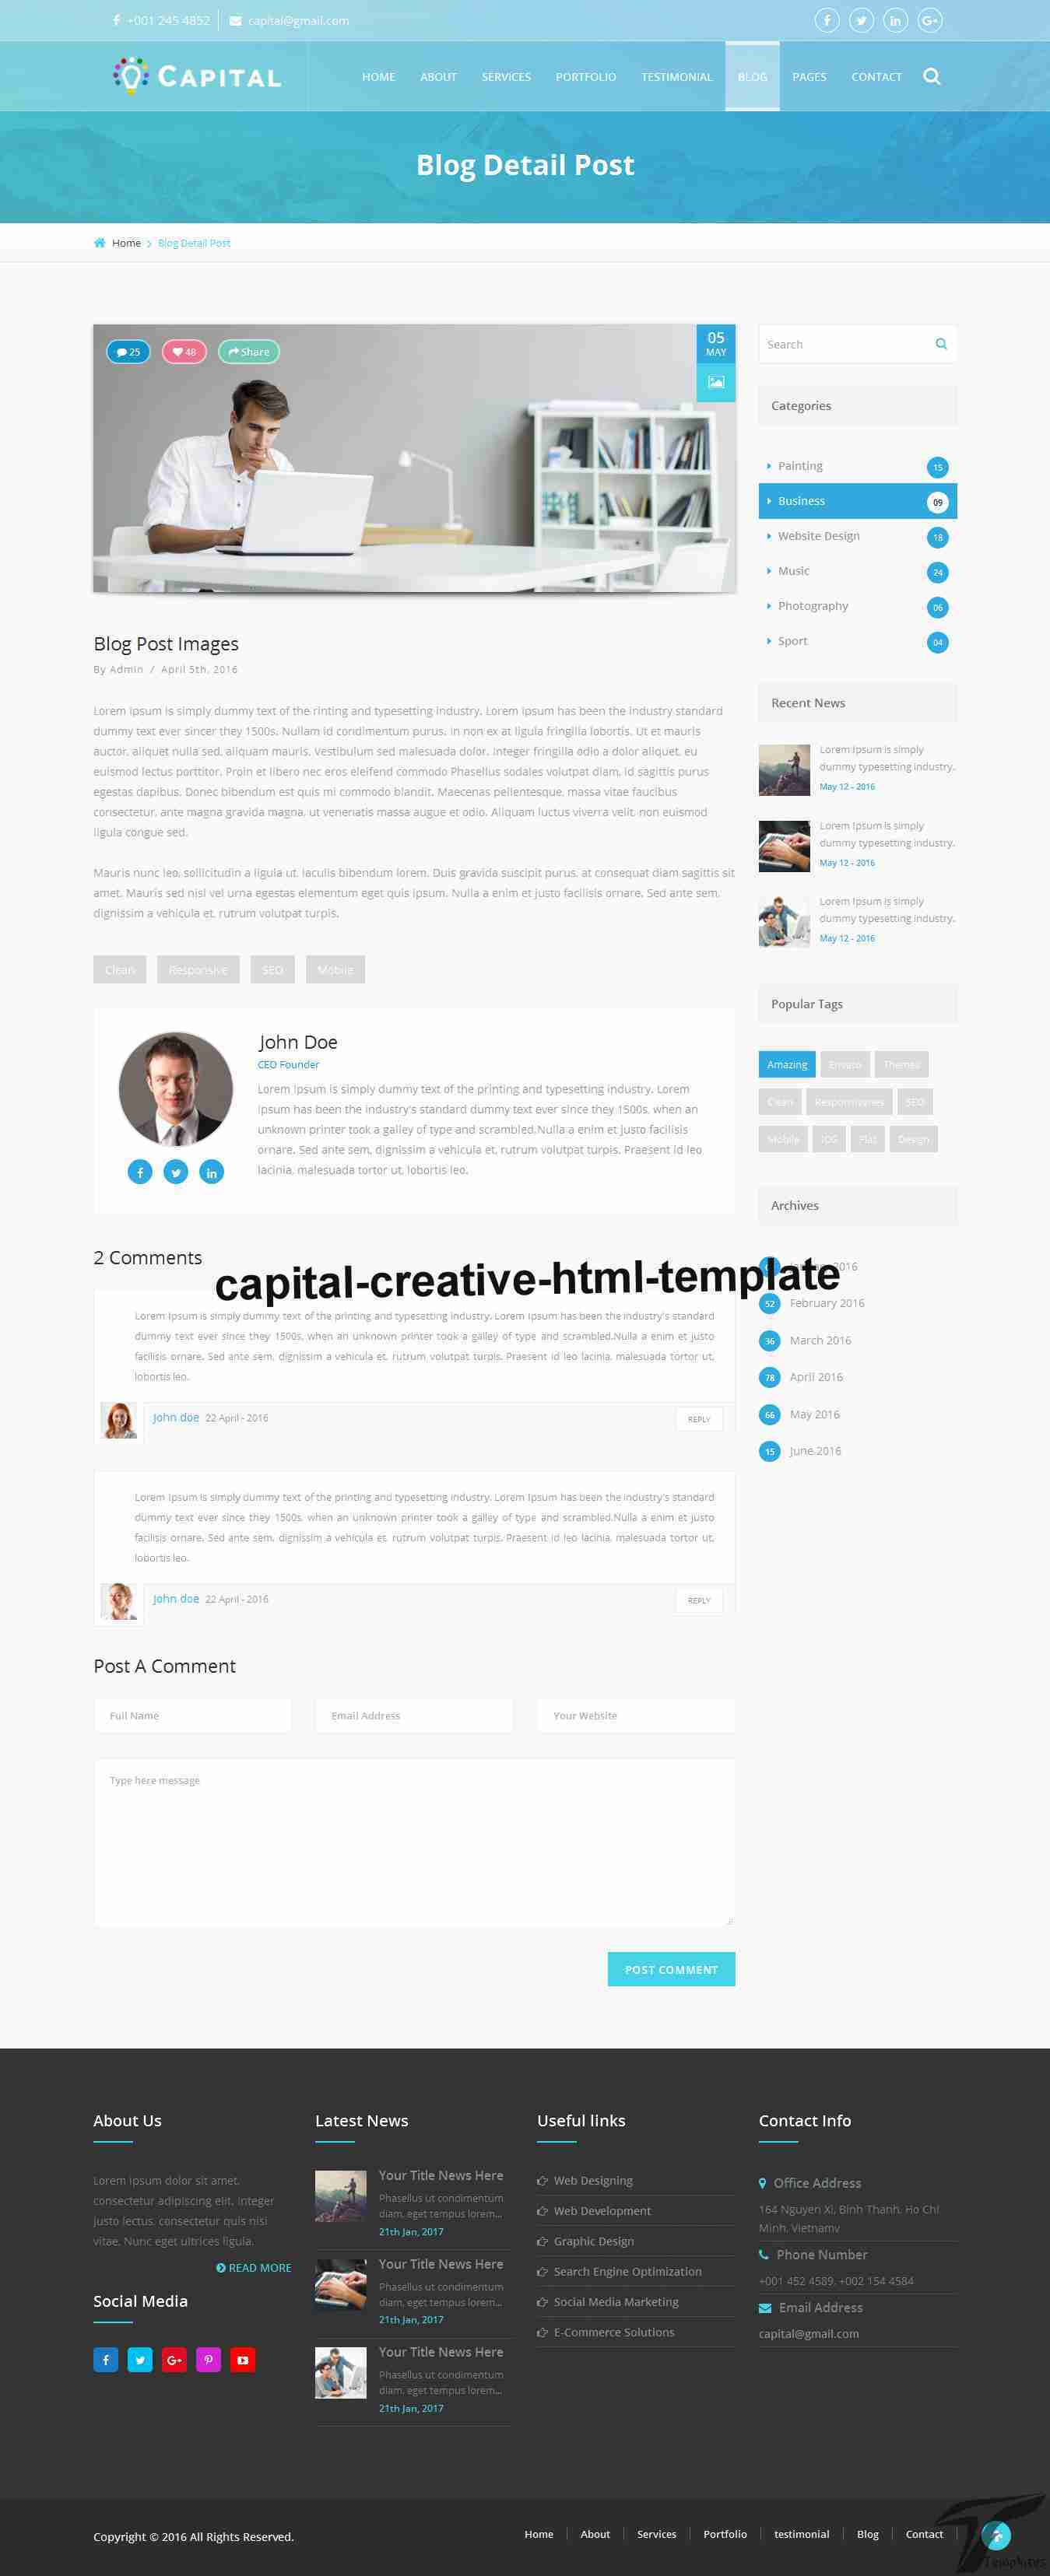 https://images.besthemes.com/images/h1_capital-creative-html-template9-_-205260579/Theme-s20s-Preview/06-Blog-Detail-Post-Right-Slidebar.png